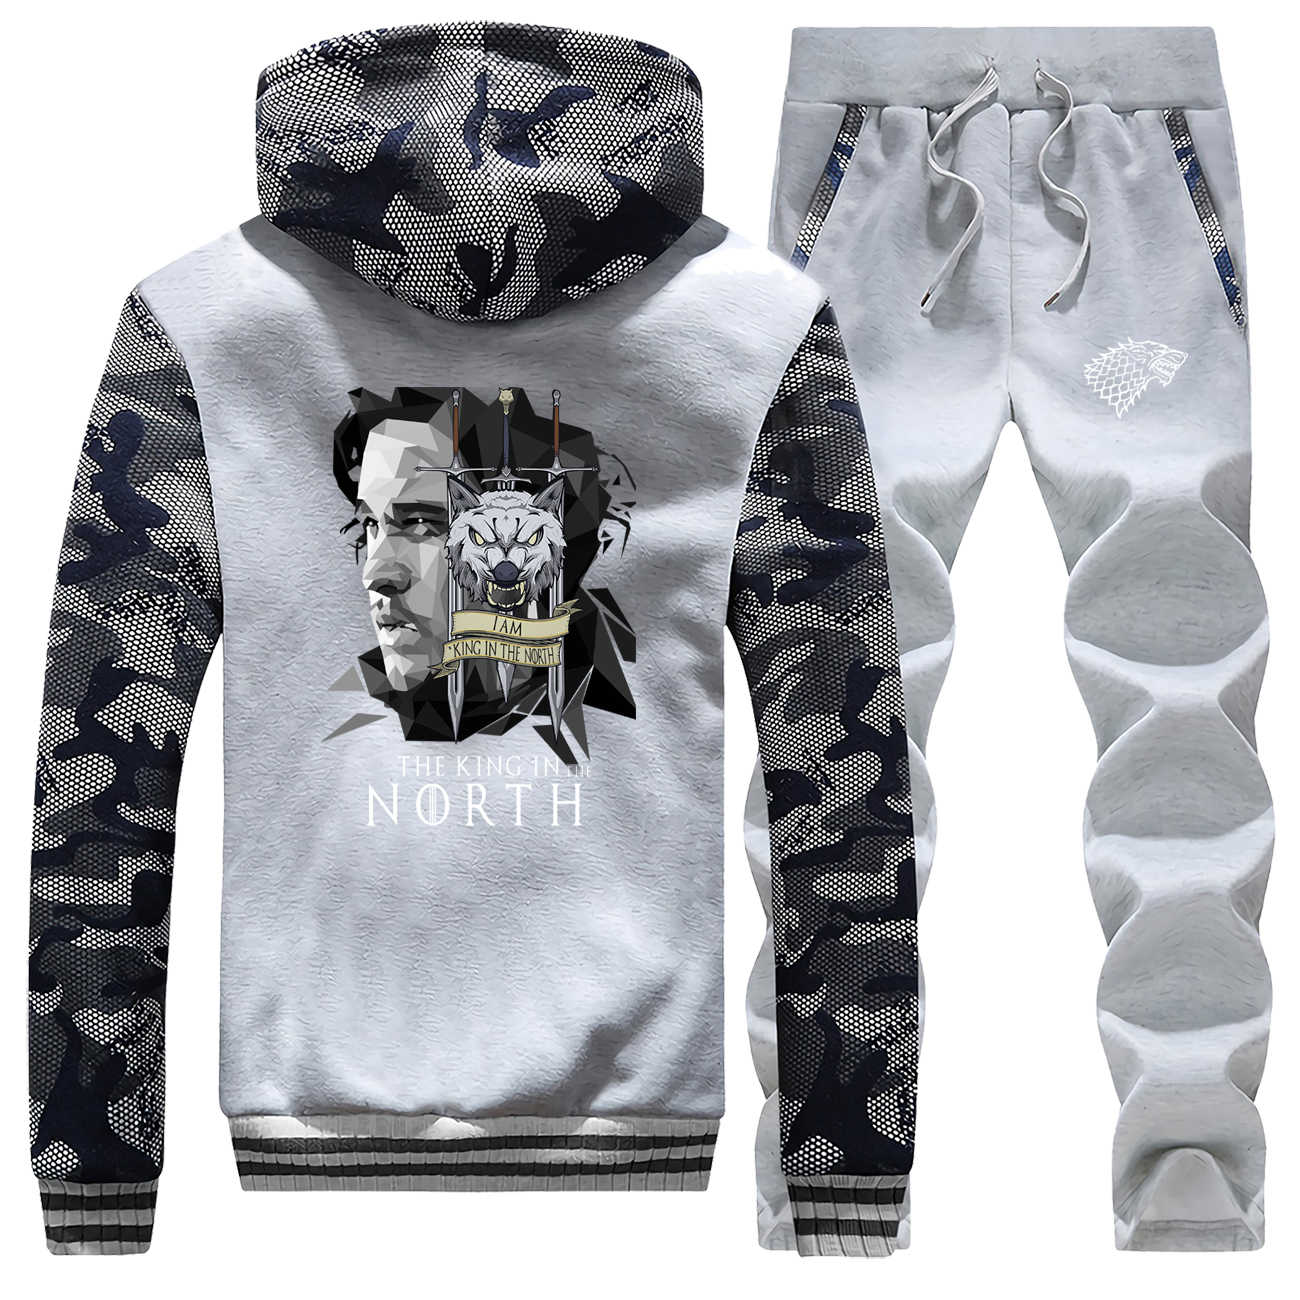 Game Of Thrones Camo Jassen Set De Koning In Het Noorden Sweatsuit Mannen Jon Sneeuw Sets Mode Huis Stark Broek fleece Sweatshirts